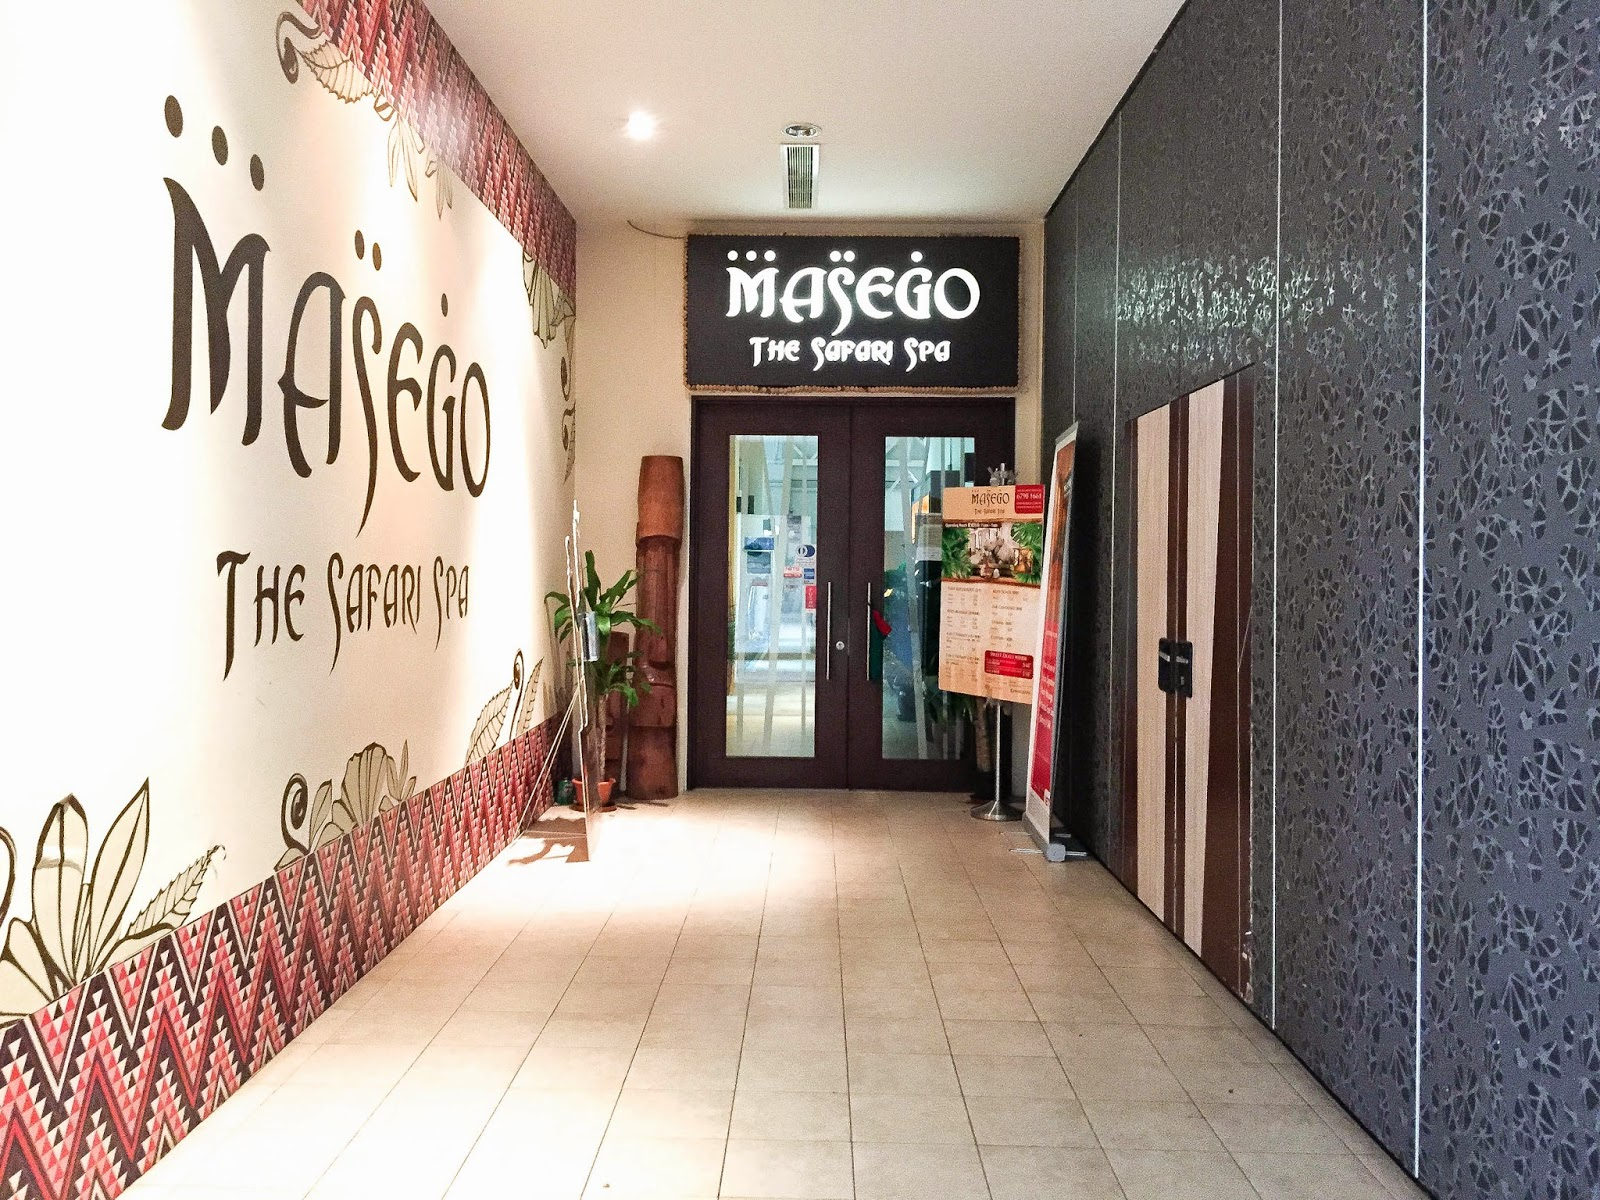 Masego Singapore Entrance and review